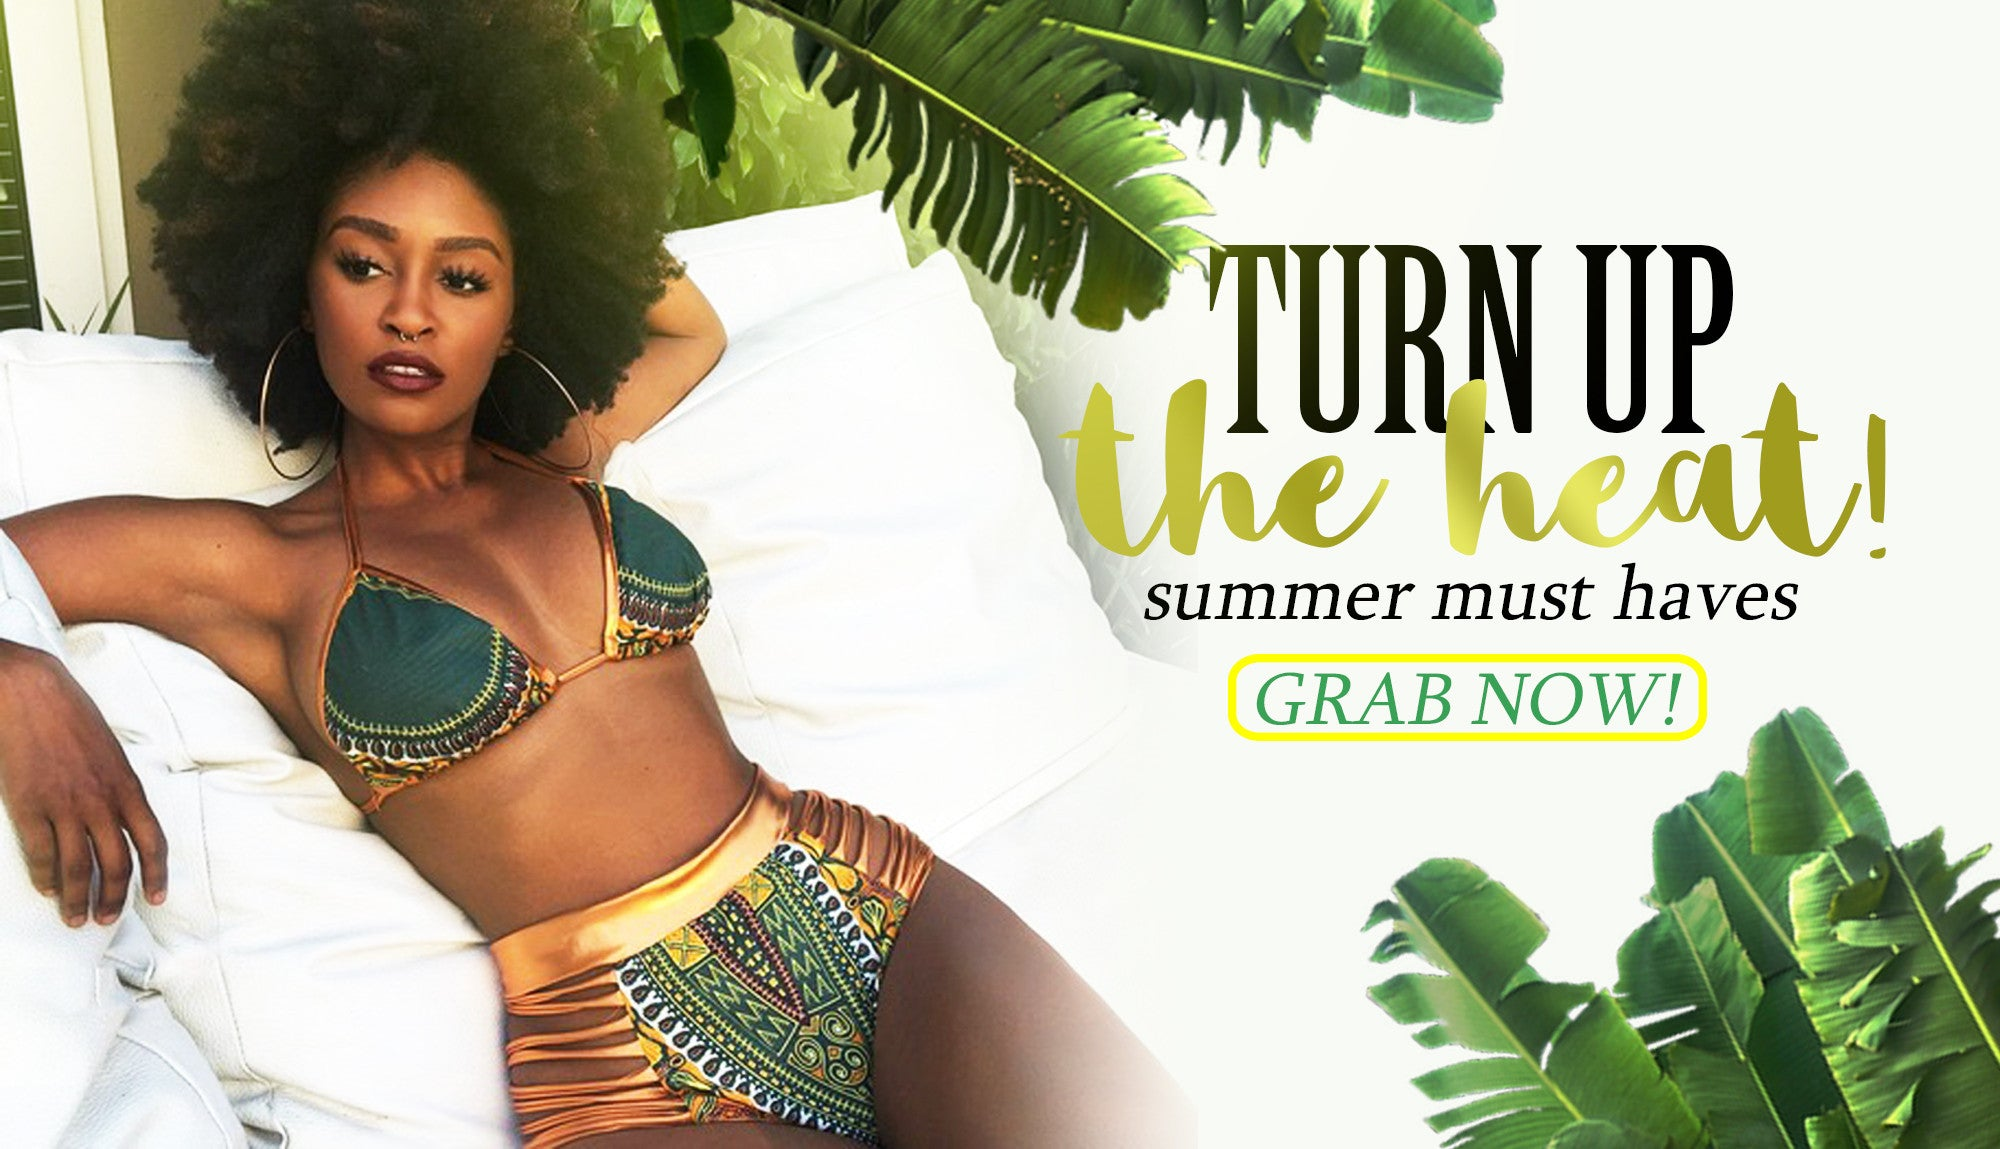 Turn up - New Summer Arrivals